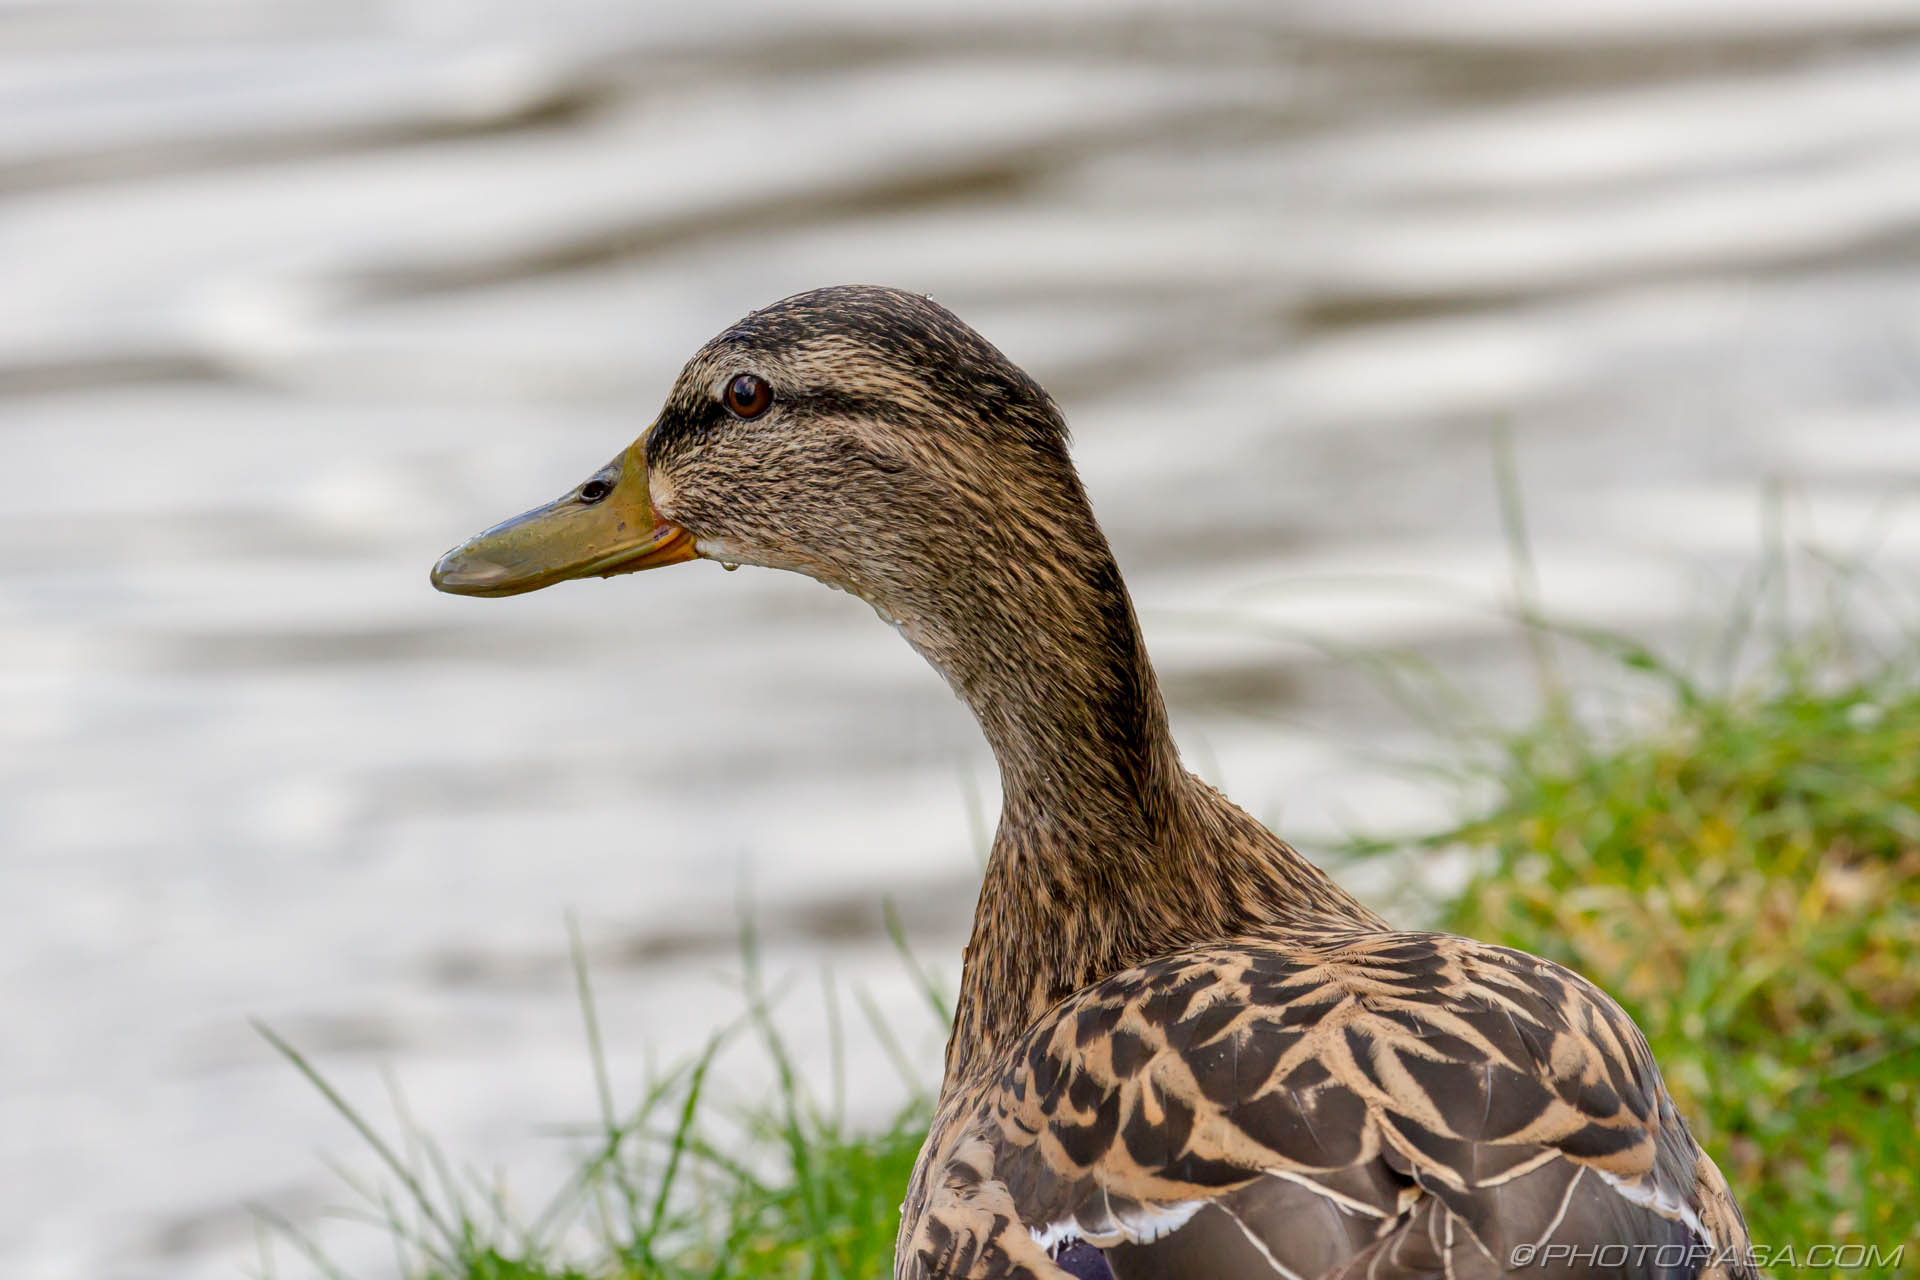 http://photorasa.com/mallard-ducks/close-up-of-female-mallard-next-to-water/